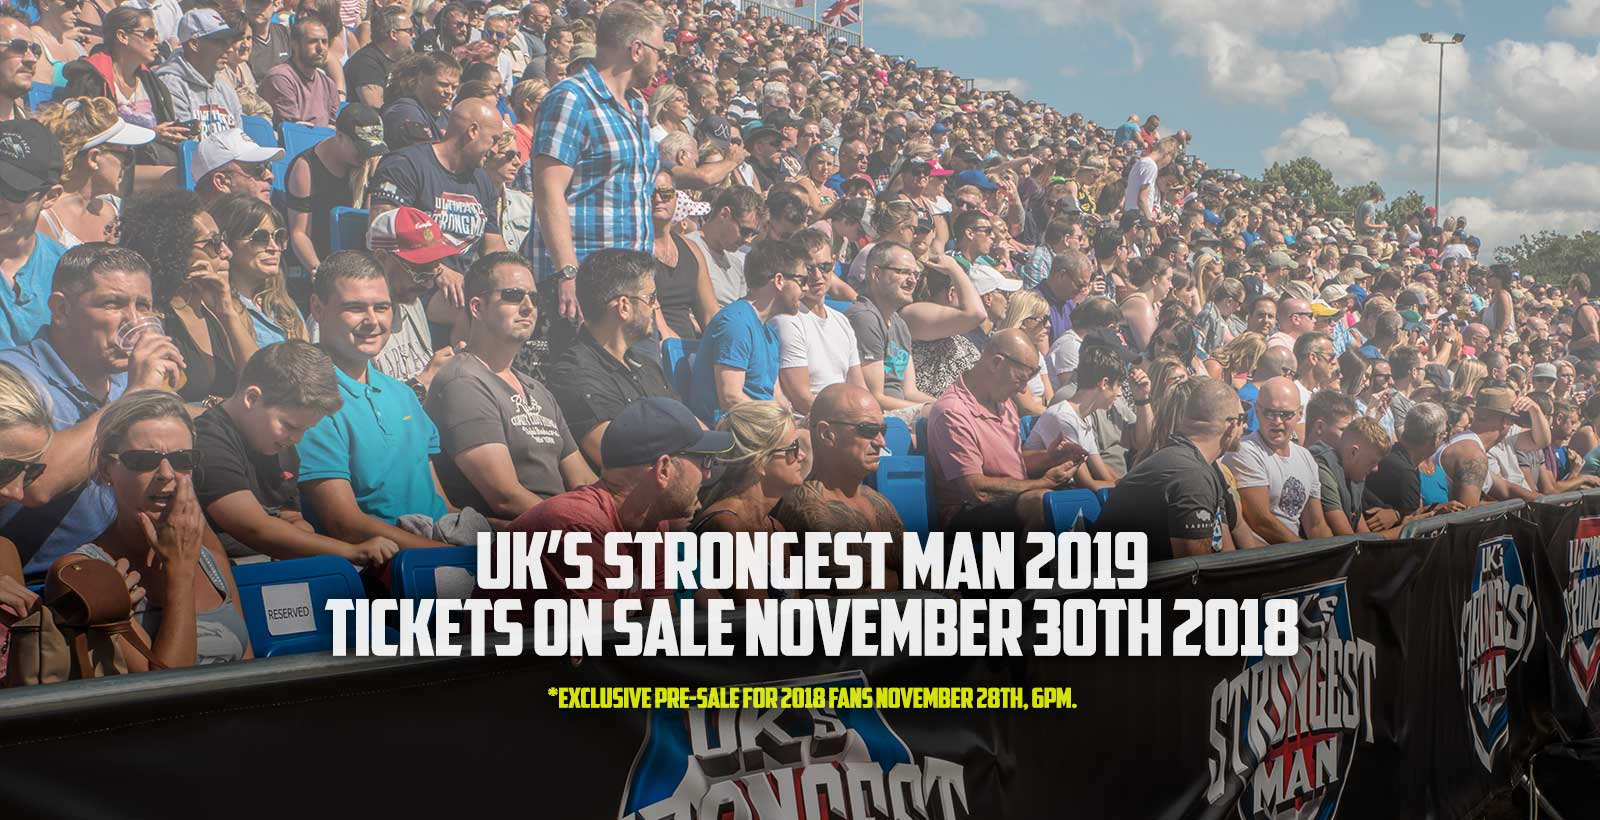 Ultimate Strongman » Uk's Strongest Man 2019